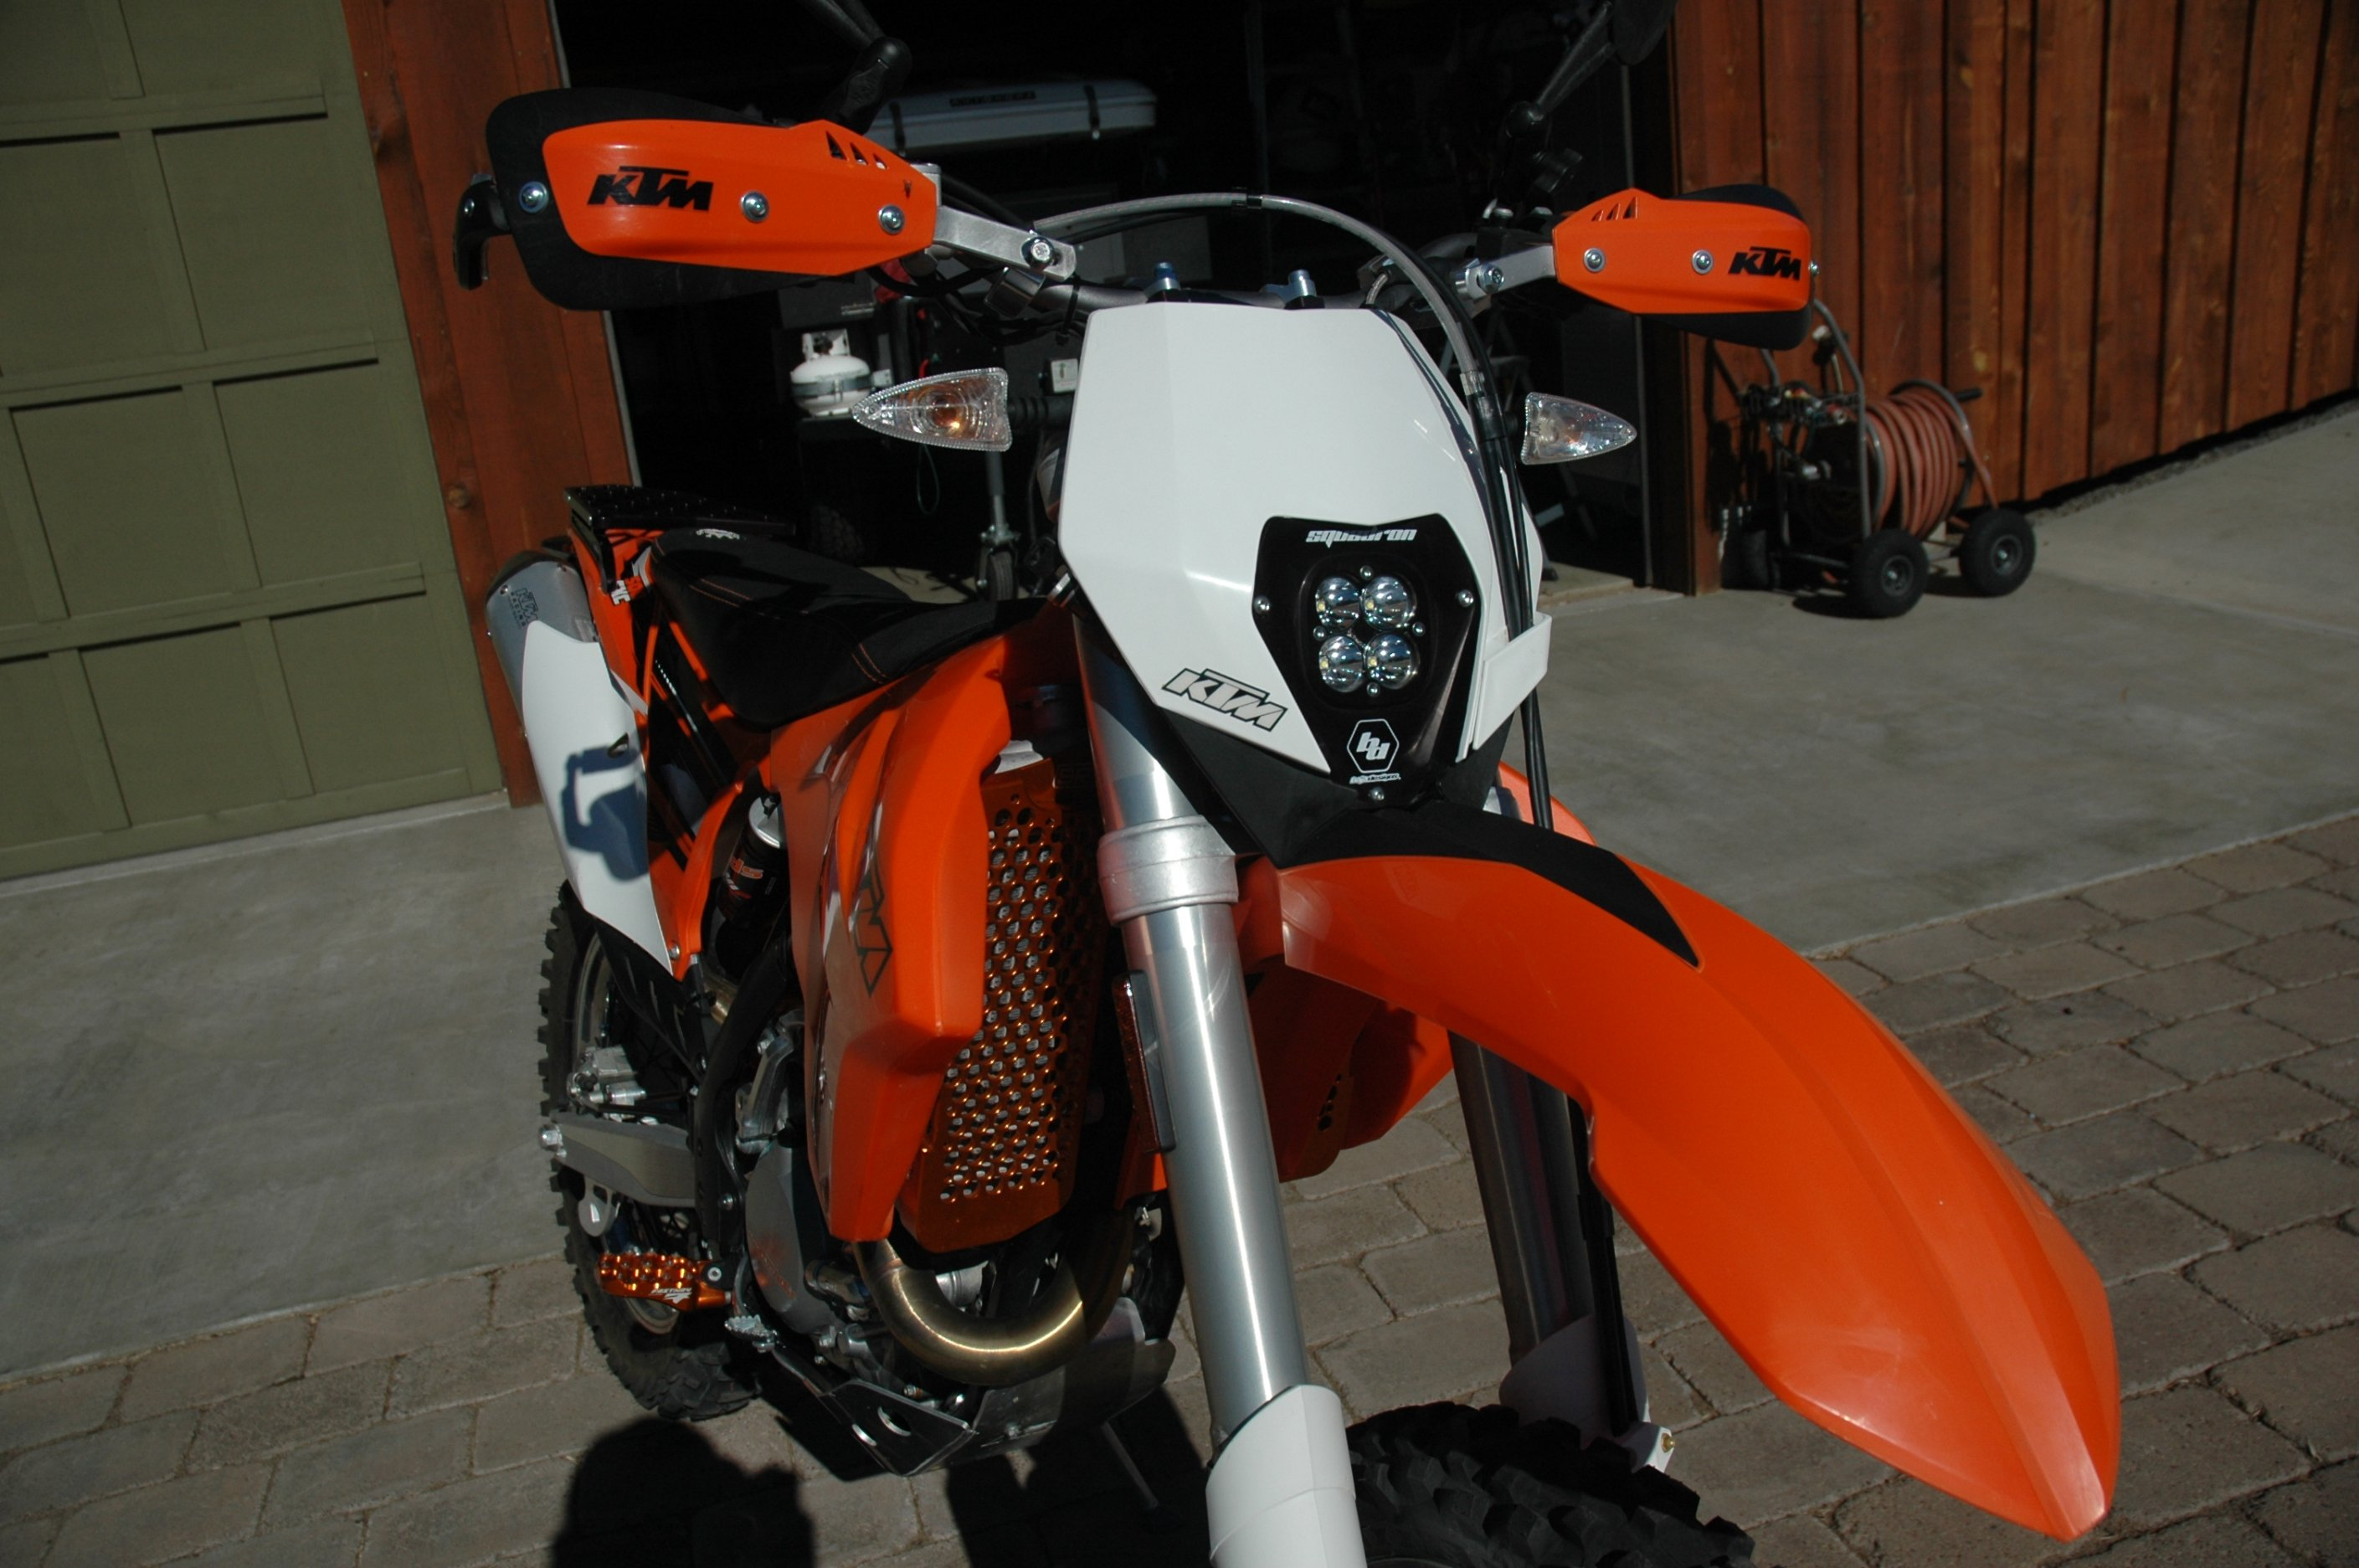 2013 Ktm 500 Exc 11 Hours 249 Miles Sold Expedition Portal